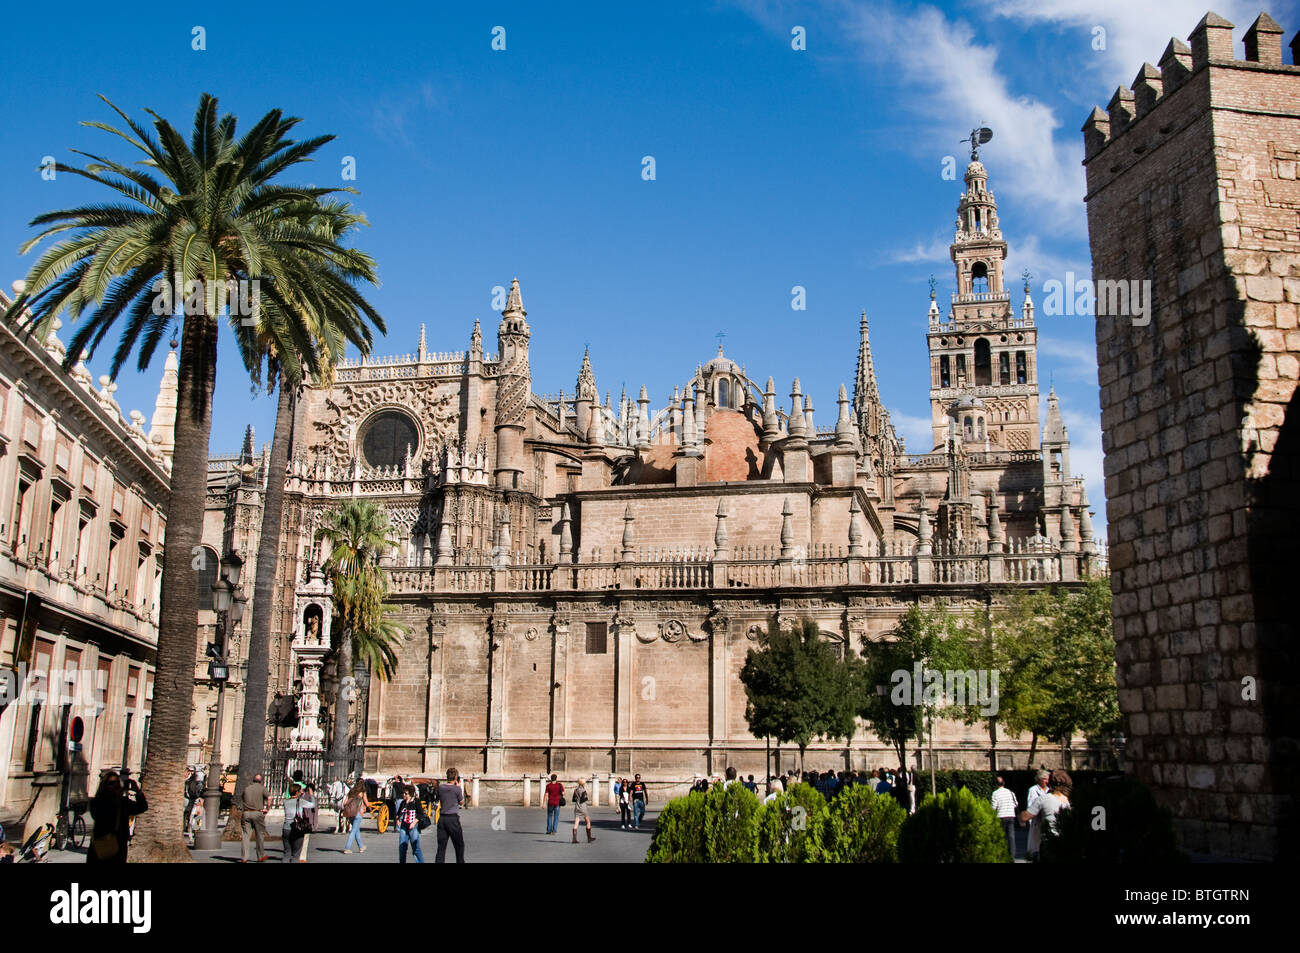 La Giralda Cathedral Seville Spain Andalusia - Stock Image